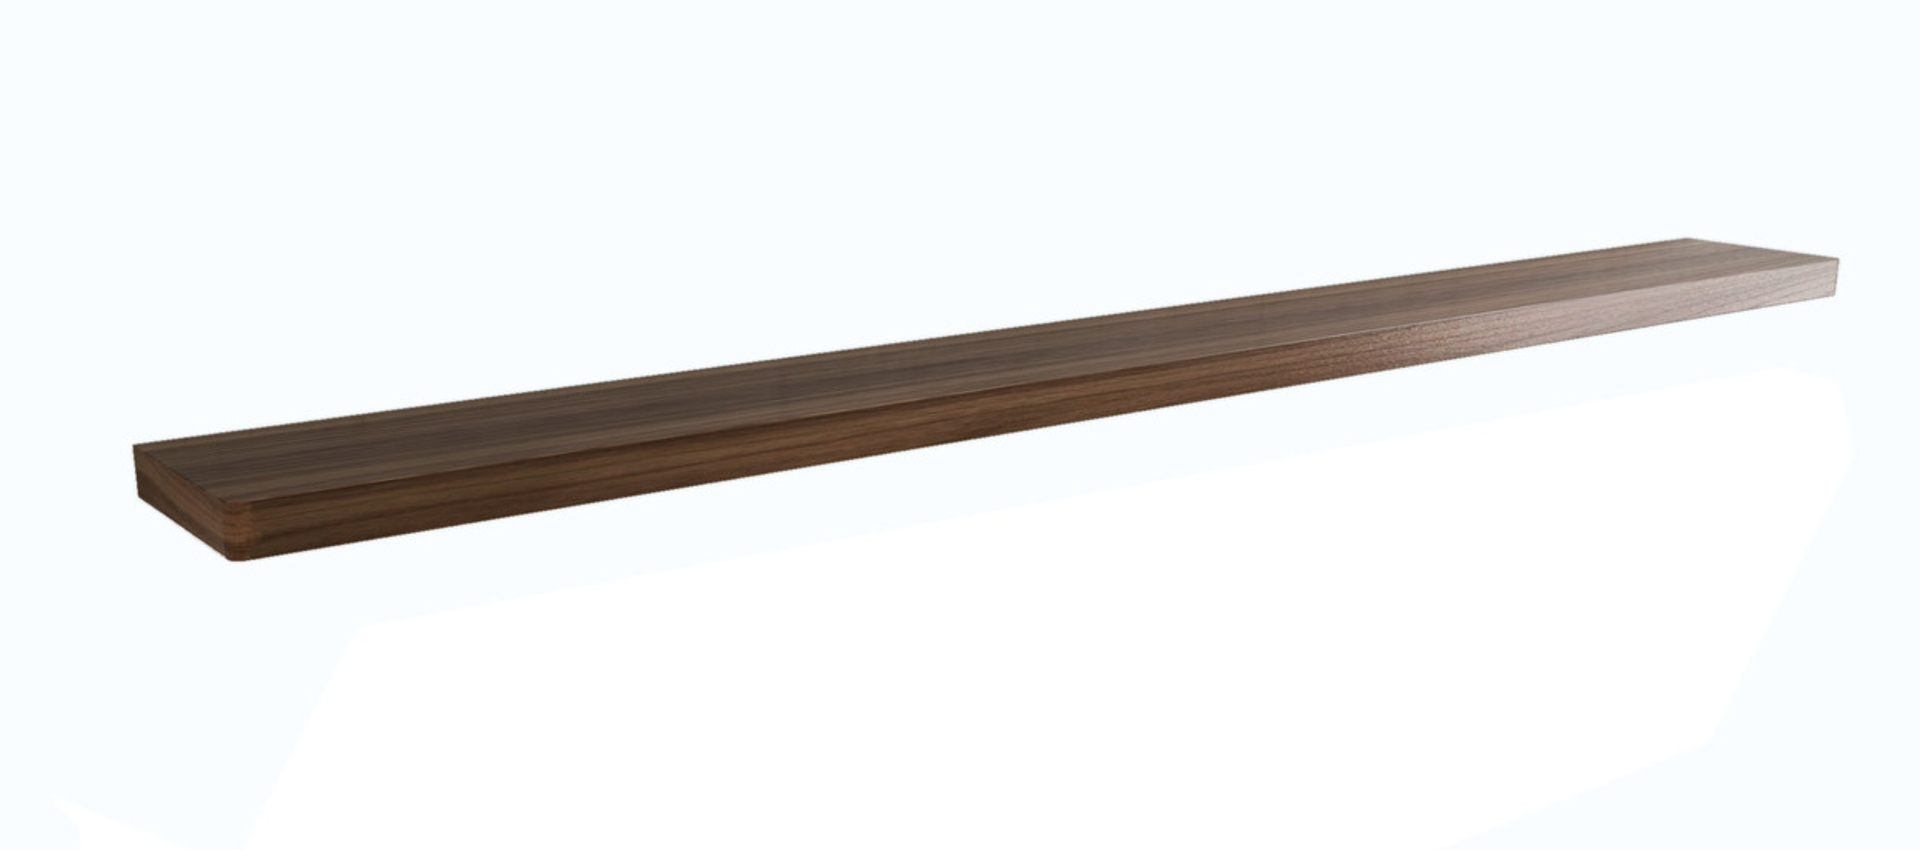 Brando Floating Shelf 220cm Walnut 311 (1)